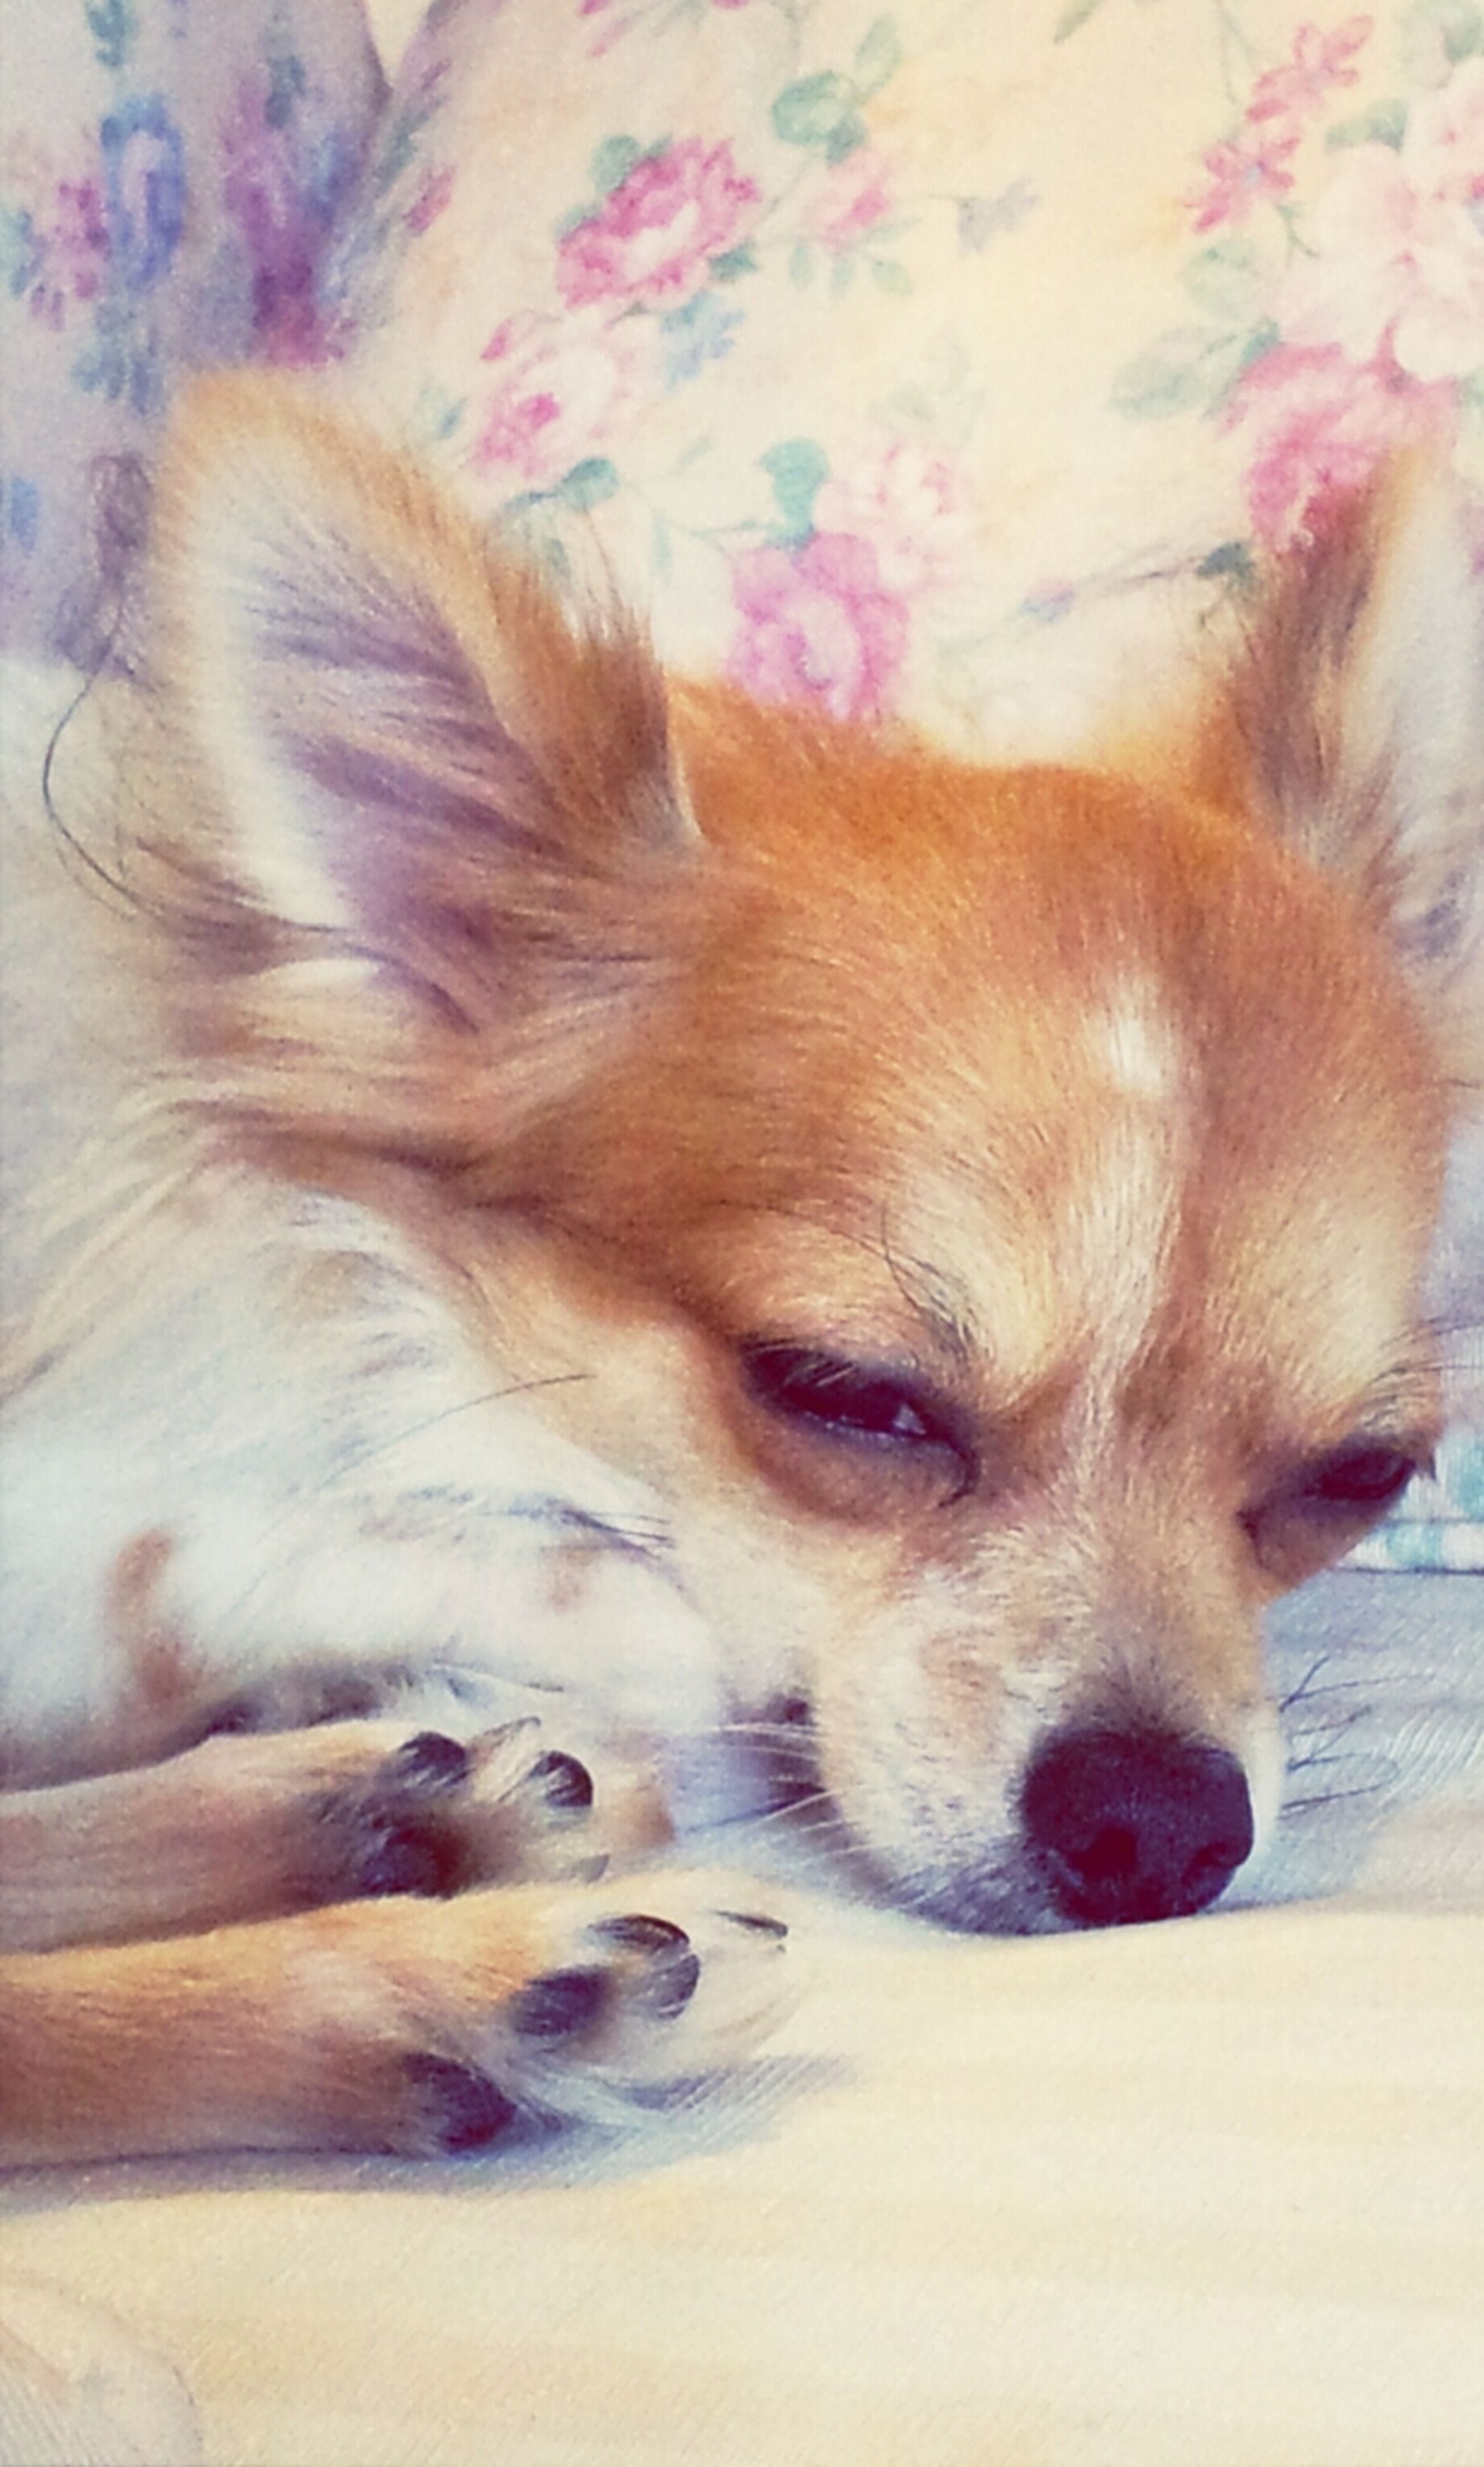 domestic animals, animal themes, dog, mammal, pets, one animal, relaxation, lying down, resting, animal head, close-up, animal hair, brown, high angle view, sleeping, indoors, canine, no people, puppy, zoology